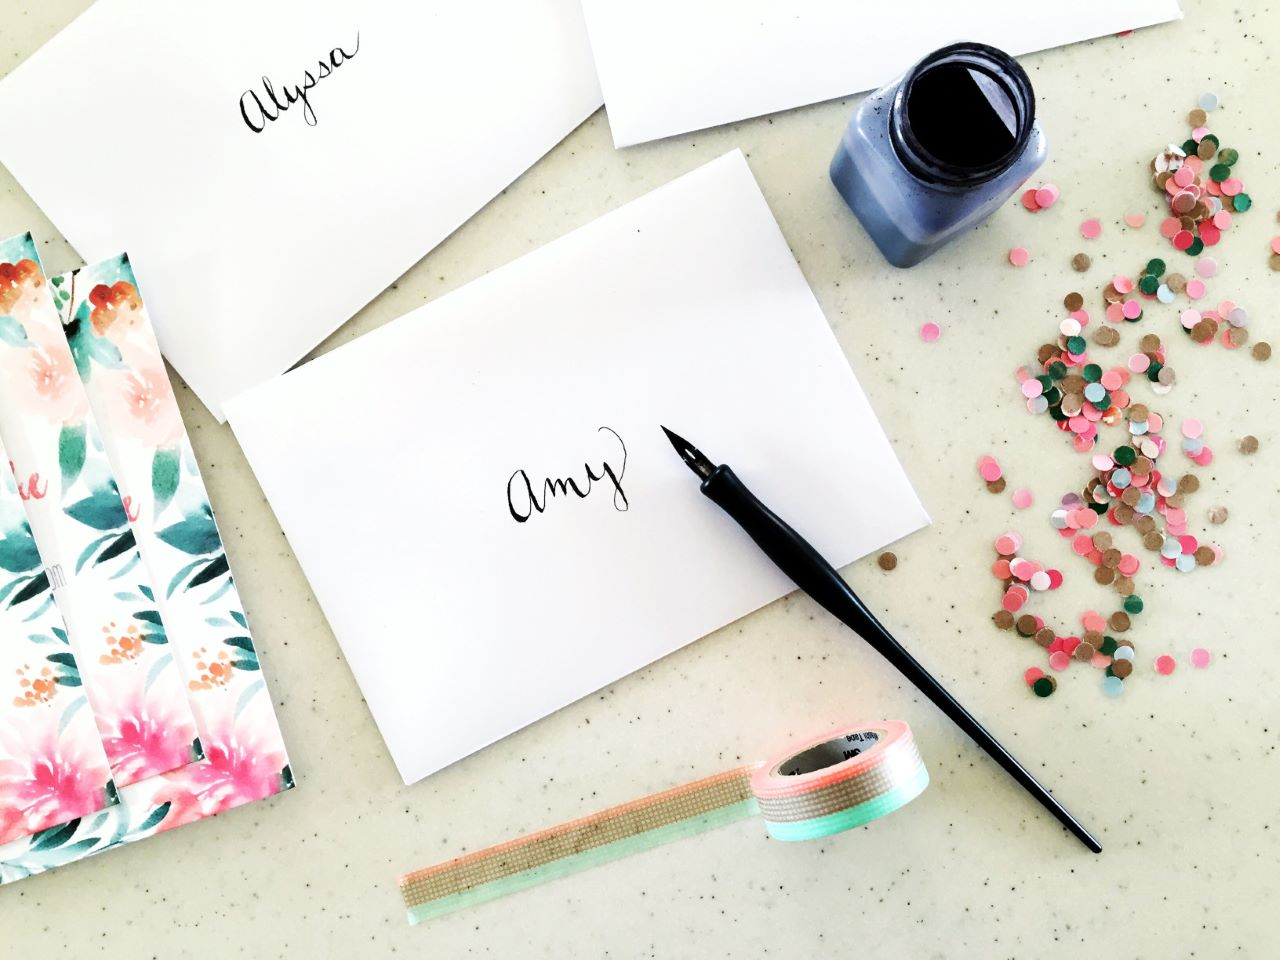 invitations in envelopes with names painted on the front